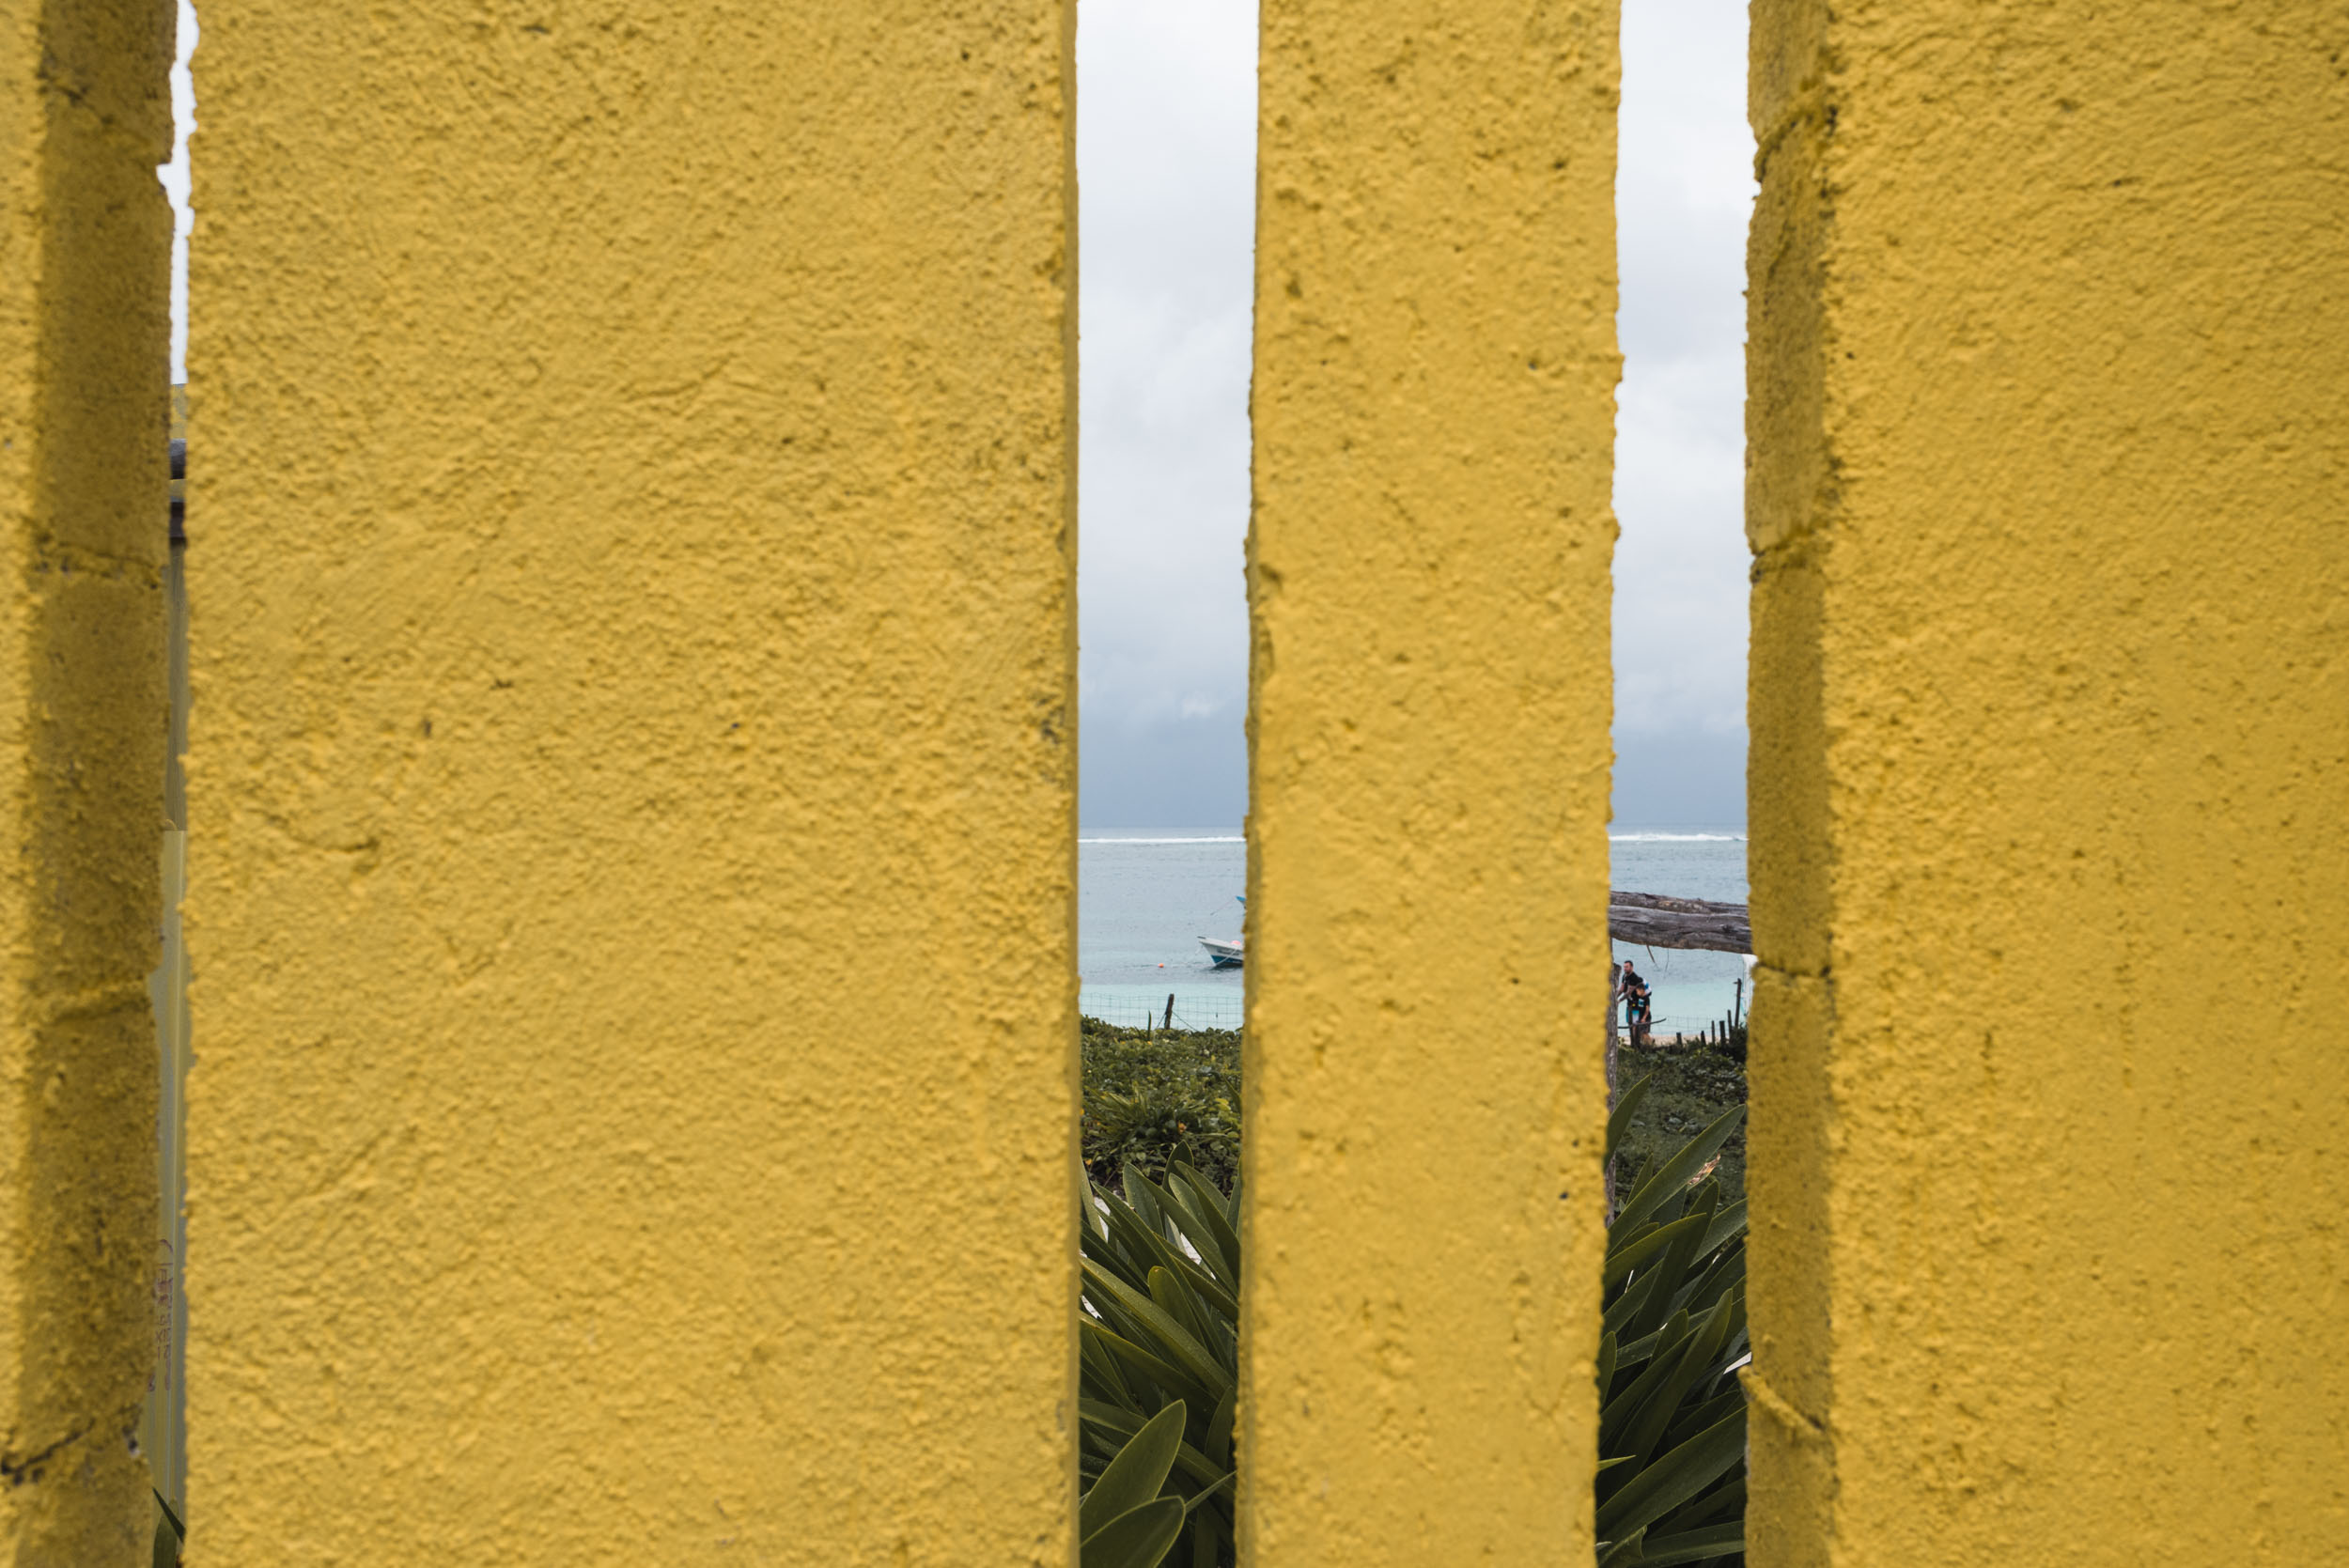 Puerto Morelos yellow fence